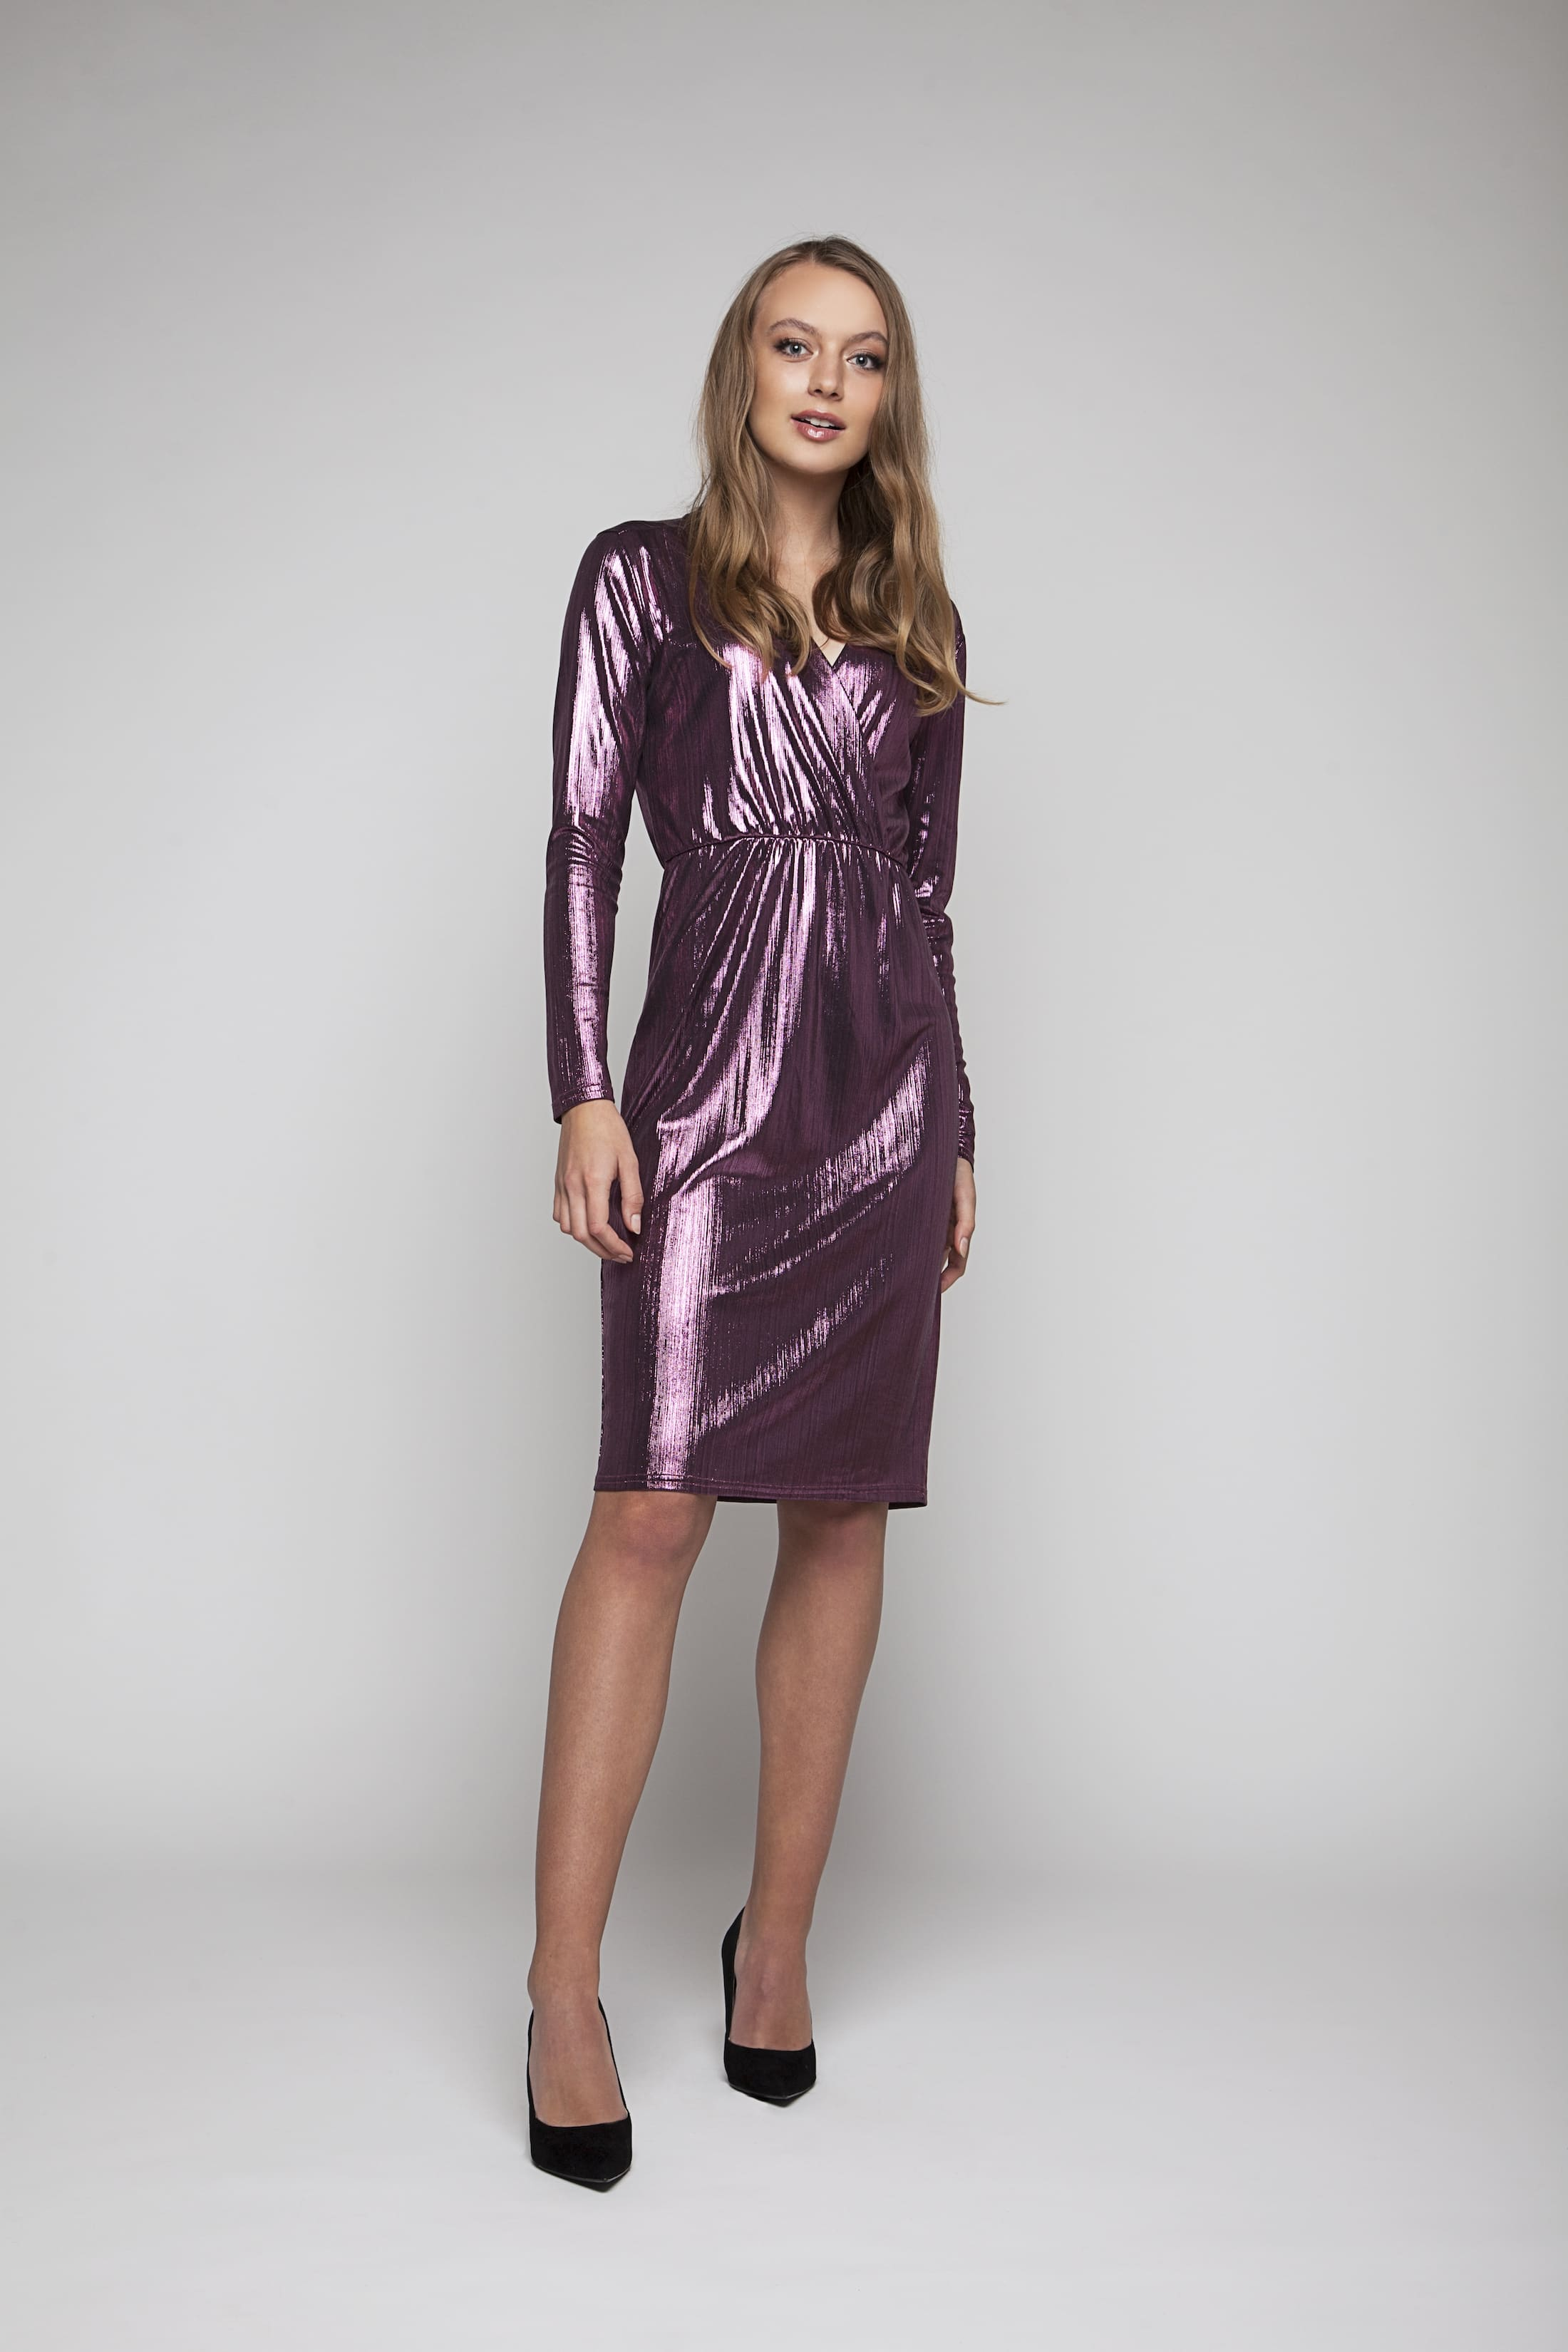 Rosa shimmering evening dress